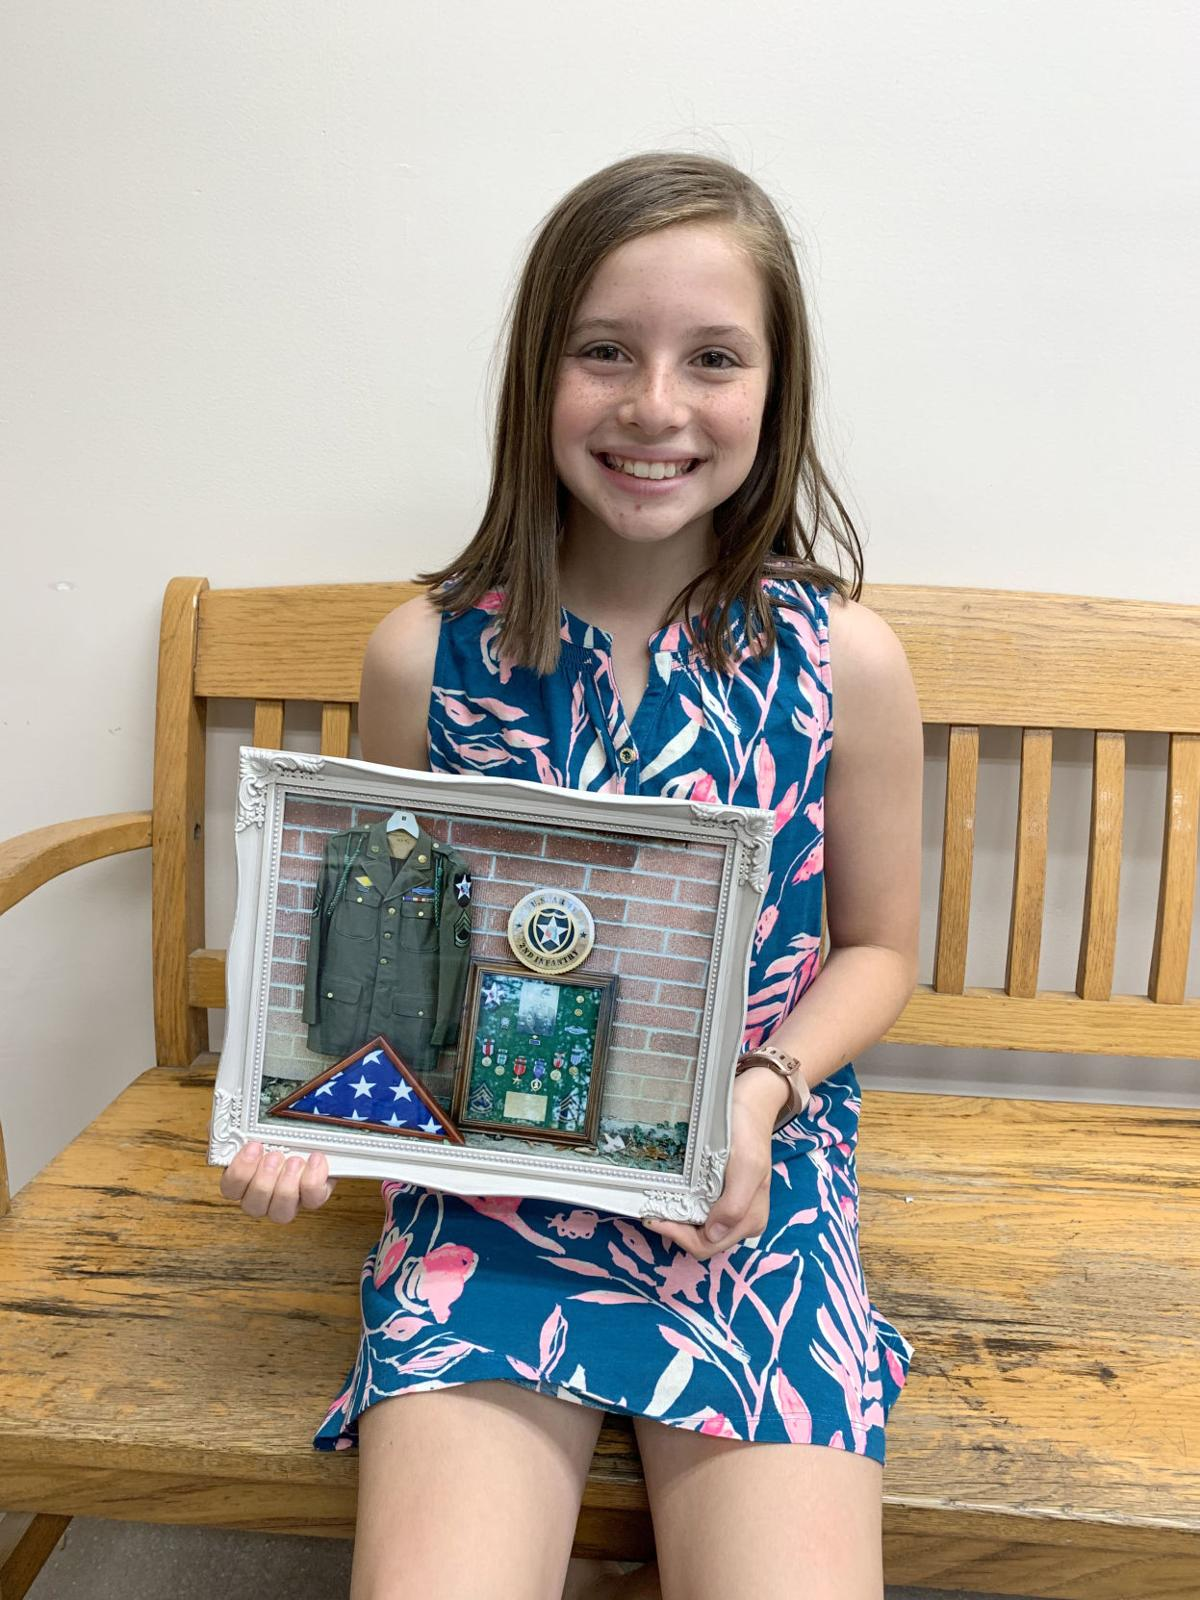 Education Spotlight: Second Street fifth grader wins state competition for photograph